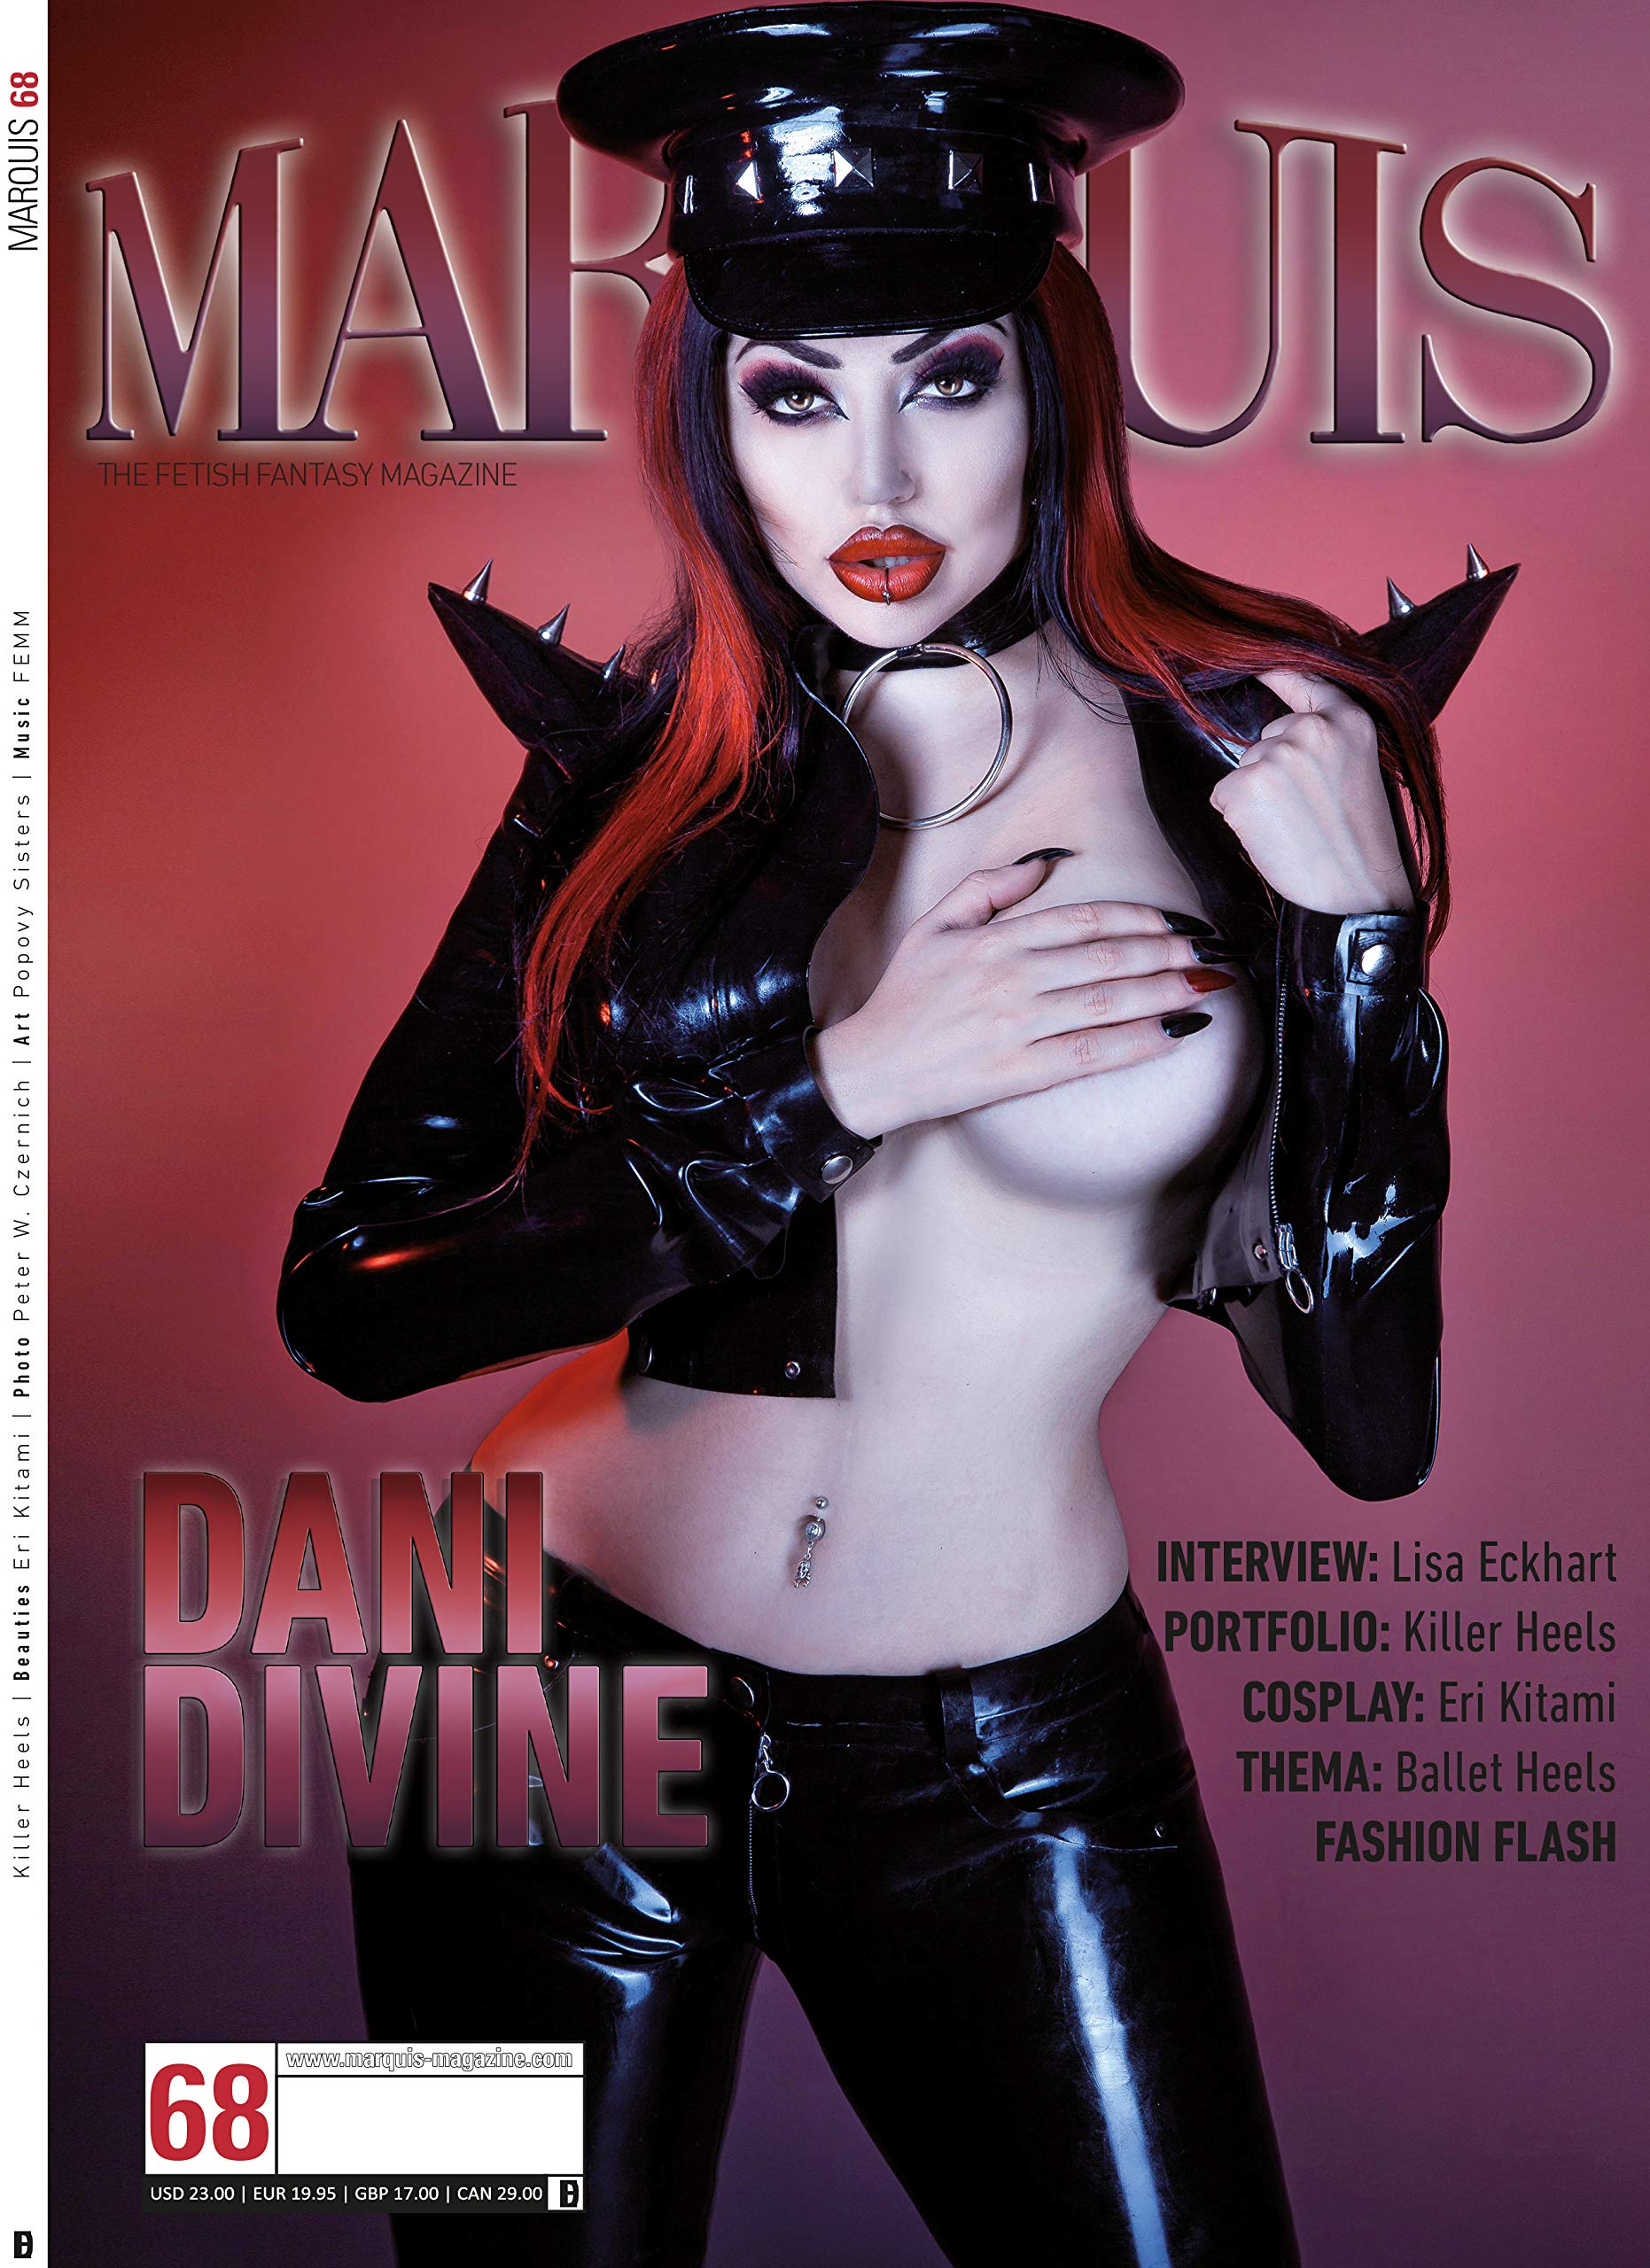 Magazin Marquis Nr. 68 (u.a. Eri Kitami in Kurage Latex)